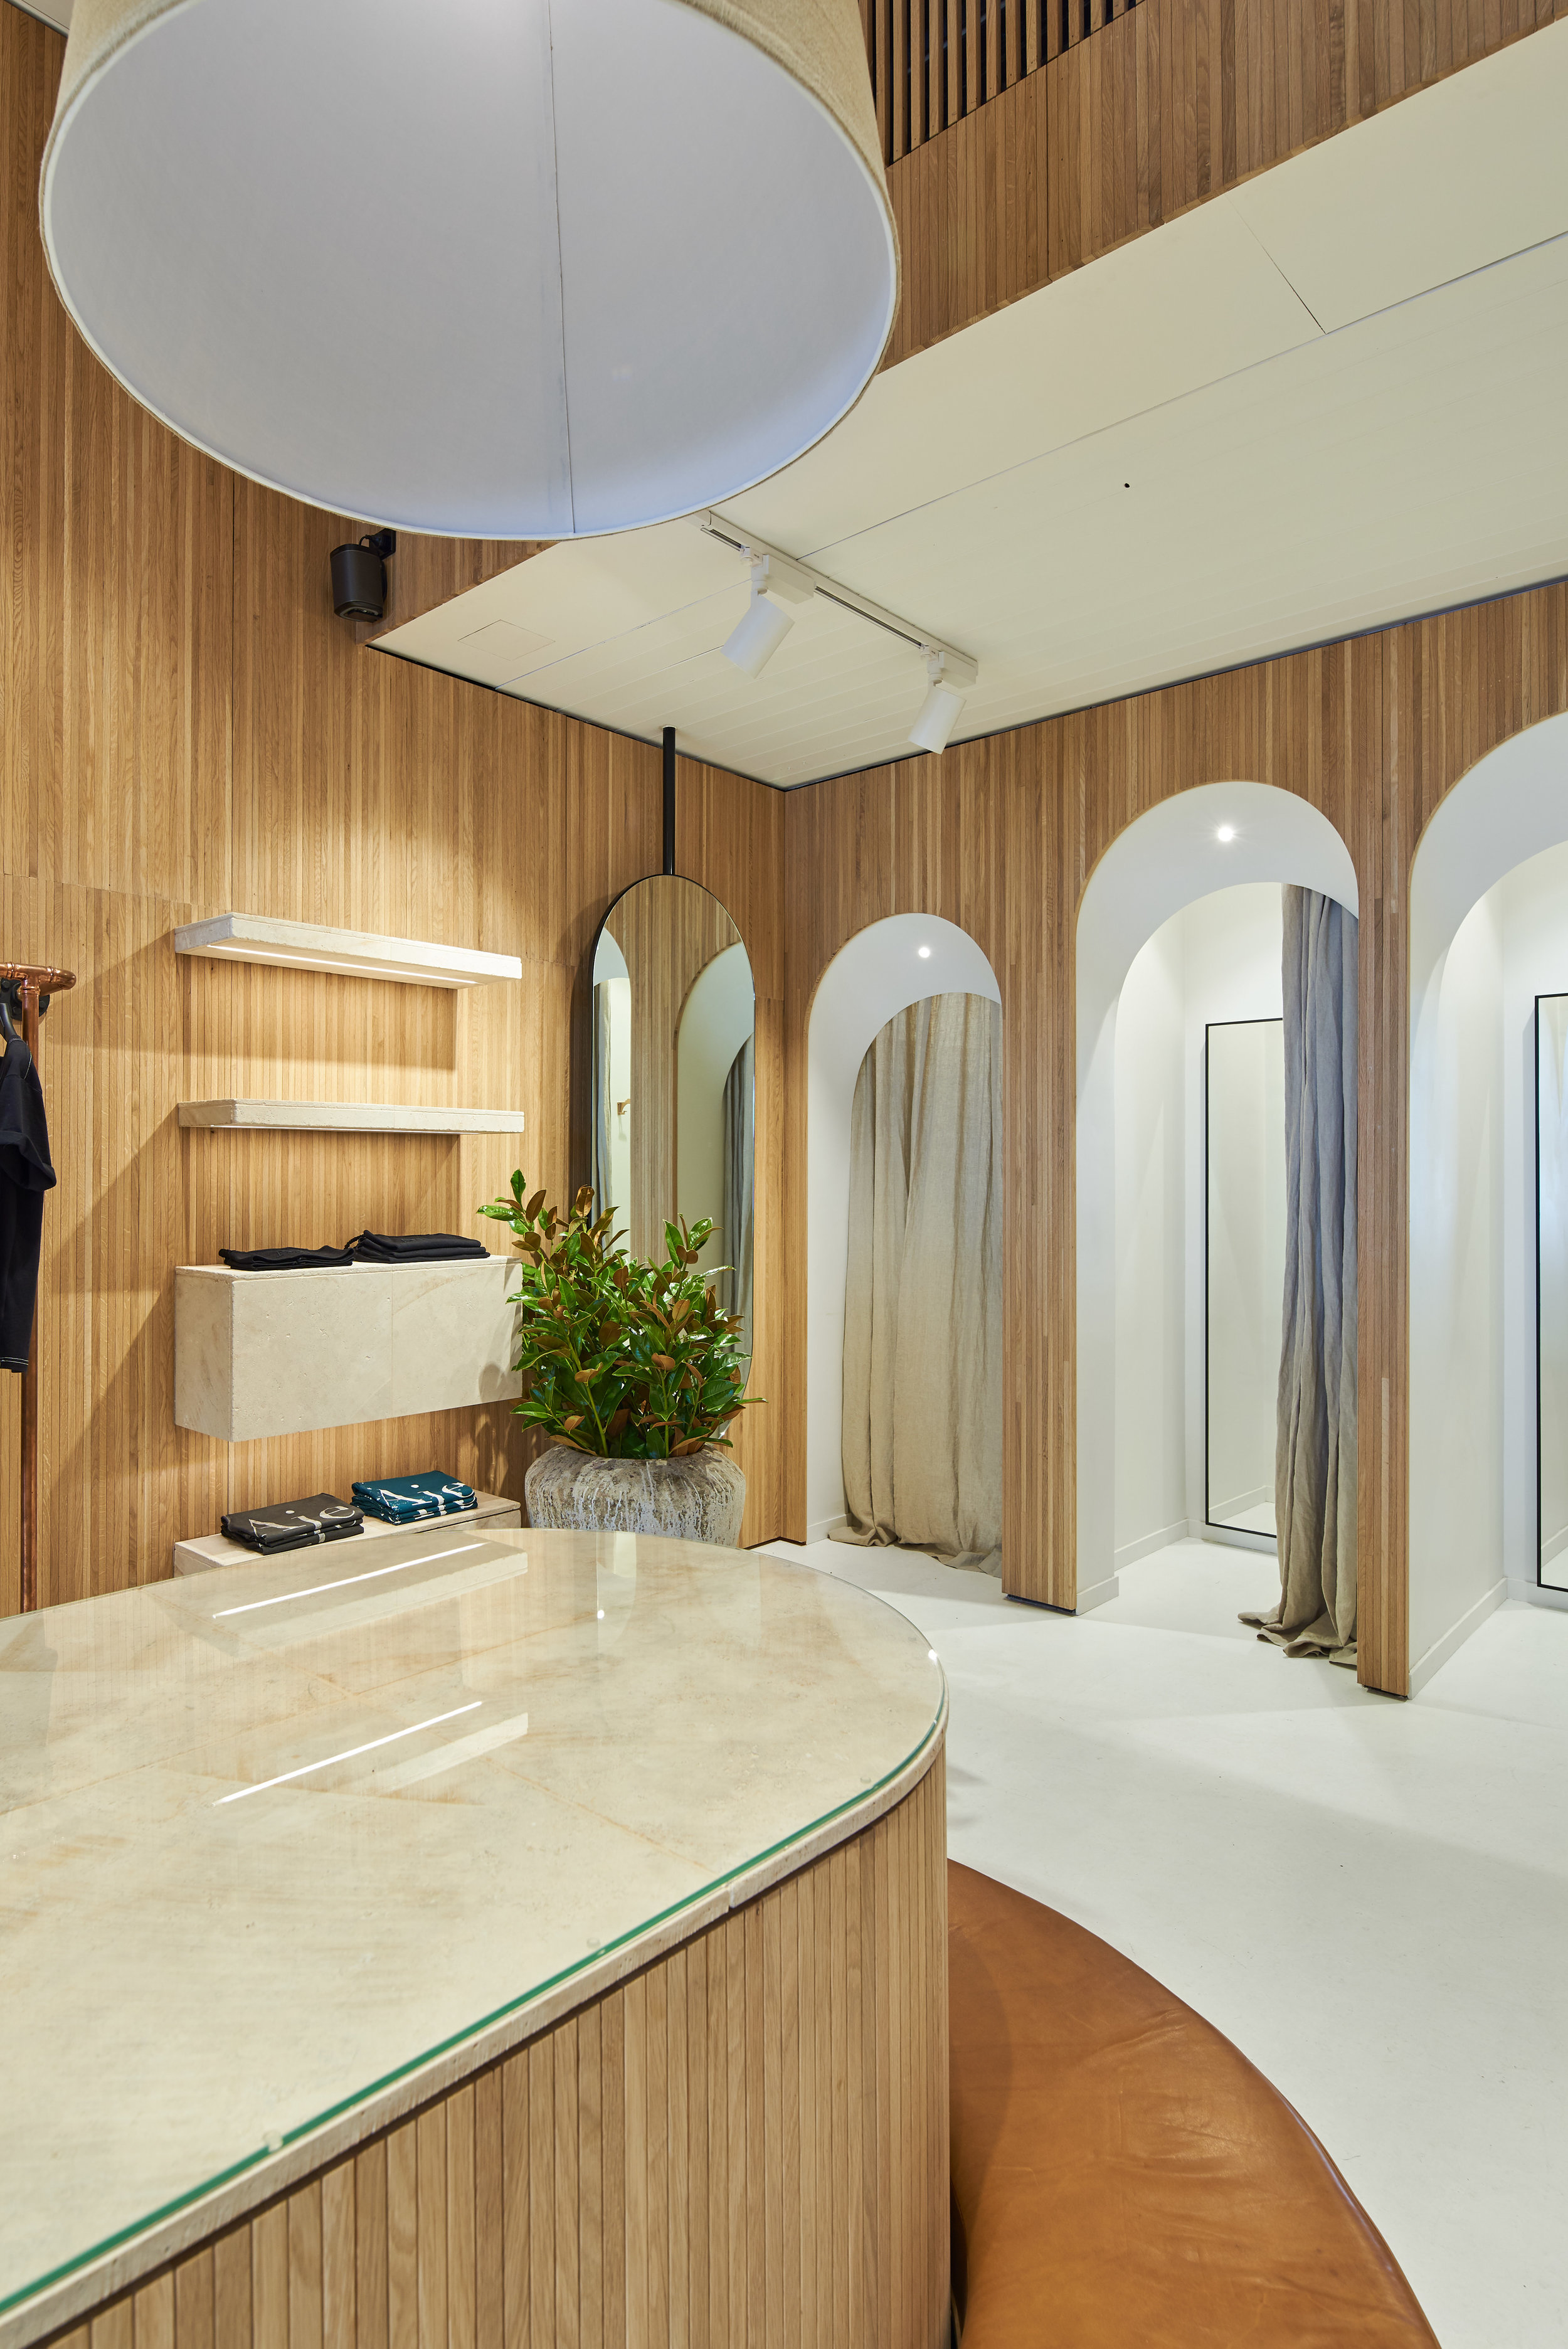 Aje Armadale<strong>Interior Design.</strong>